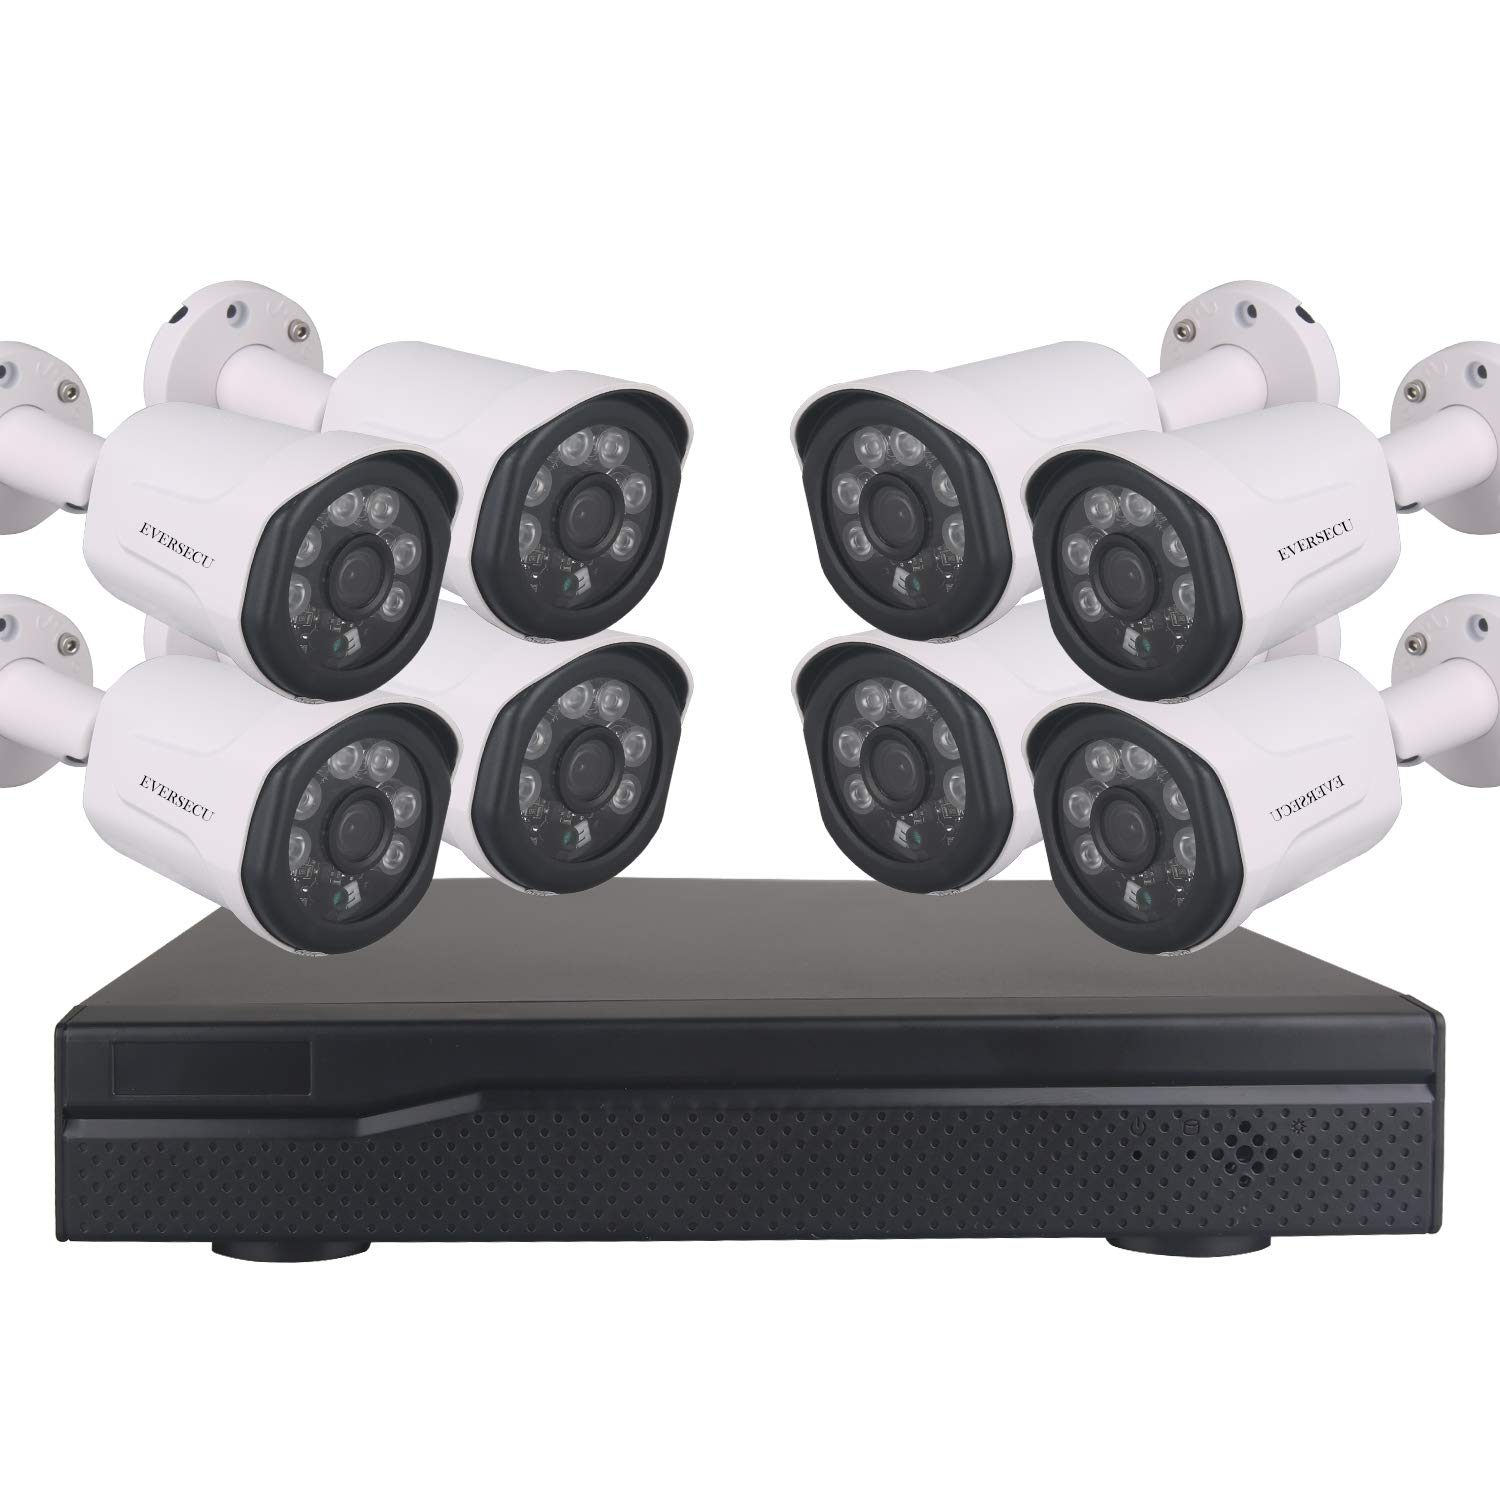 EVERSECU 1080P PoE Home Security Camera System, 8 Channel H.265 NVR Recorder with 8 2.0MP Outdoor Indoor Surveillance CCTV Bullet IP Cameras, 100ft Night Vision, No Hard Drive